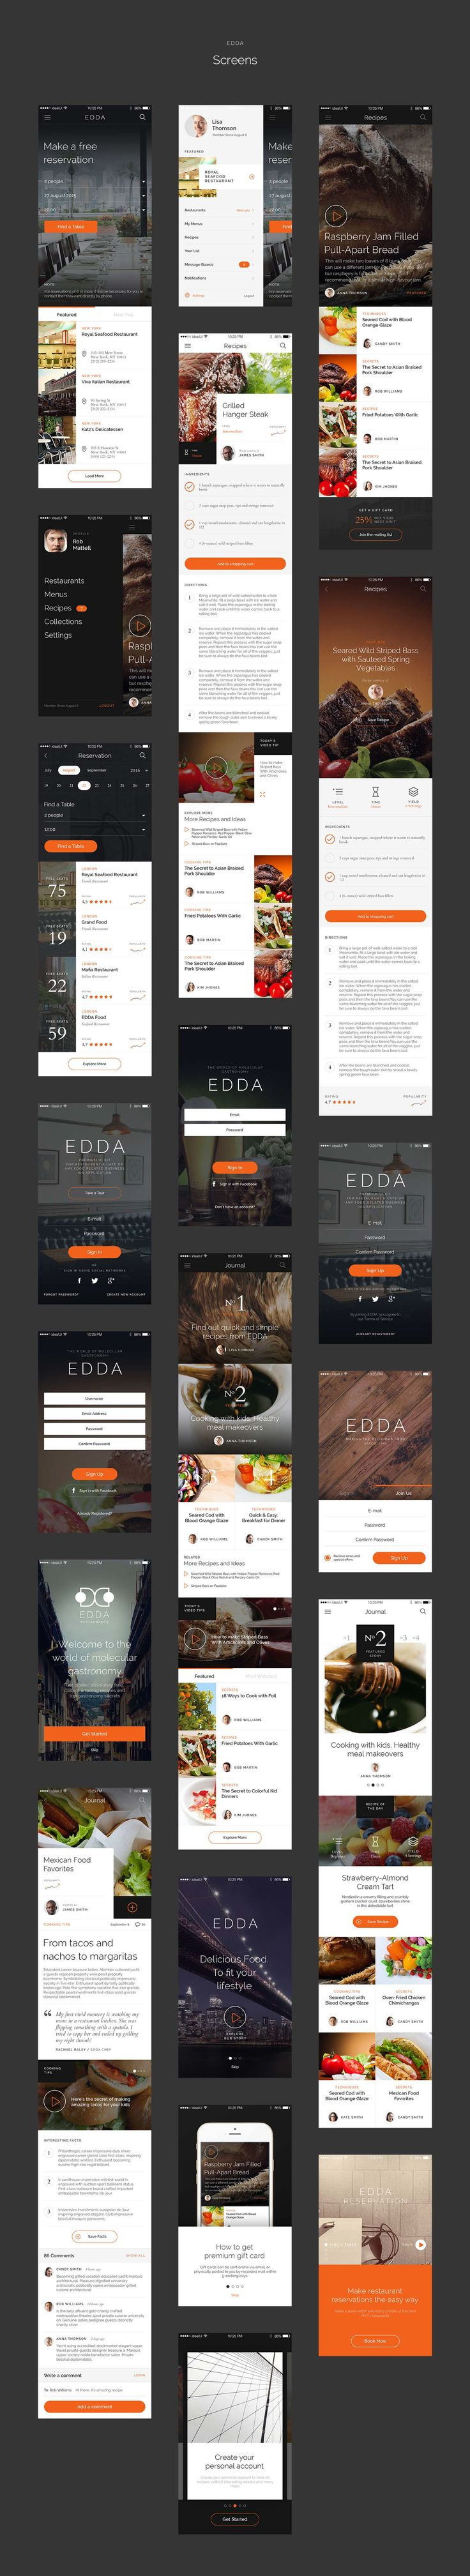 EDDA UI Kit on Behance